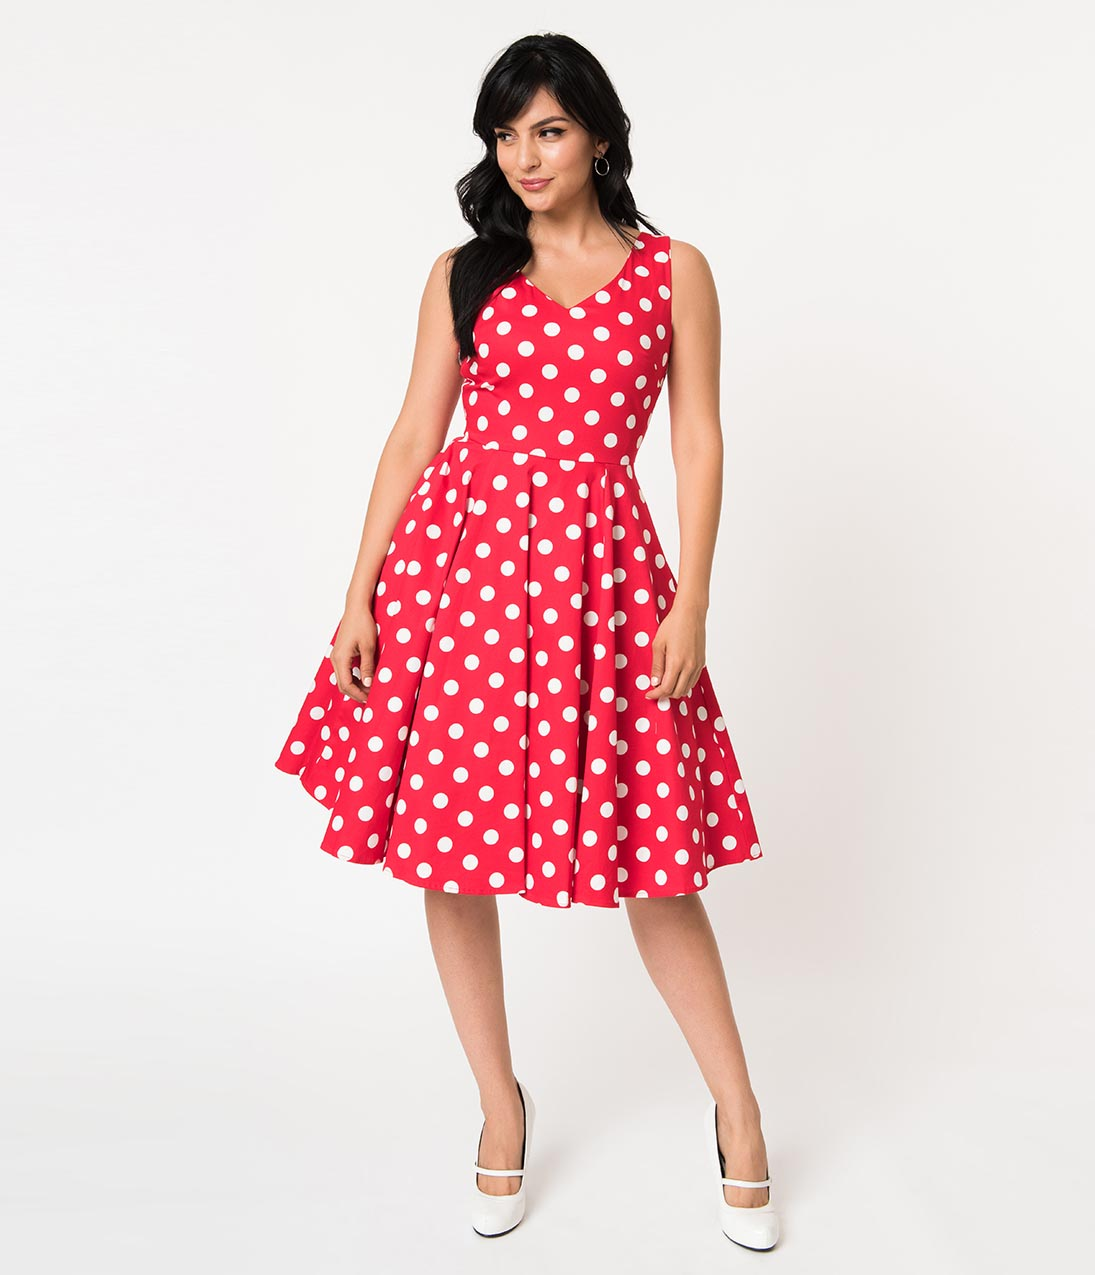 Vintage Polka Dot Dresses – 50s Spotty and Ditsy Prints Vintage Style Red  White Polka Dot Sleeveless Cotton Swing Dress $68.00 AT vintagedancer.com